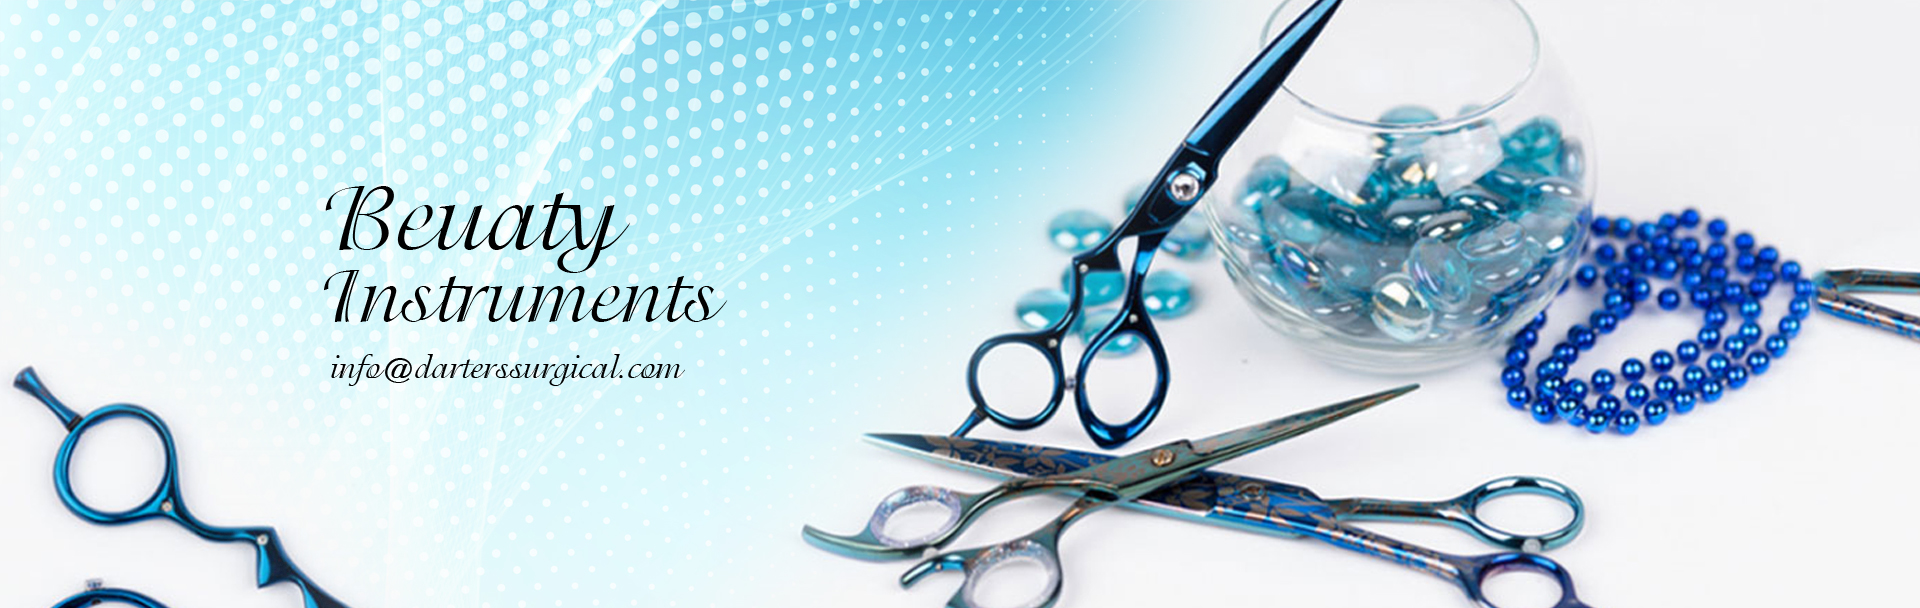 Beauty Care Instruments